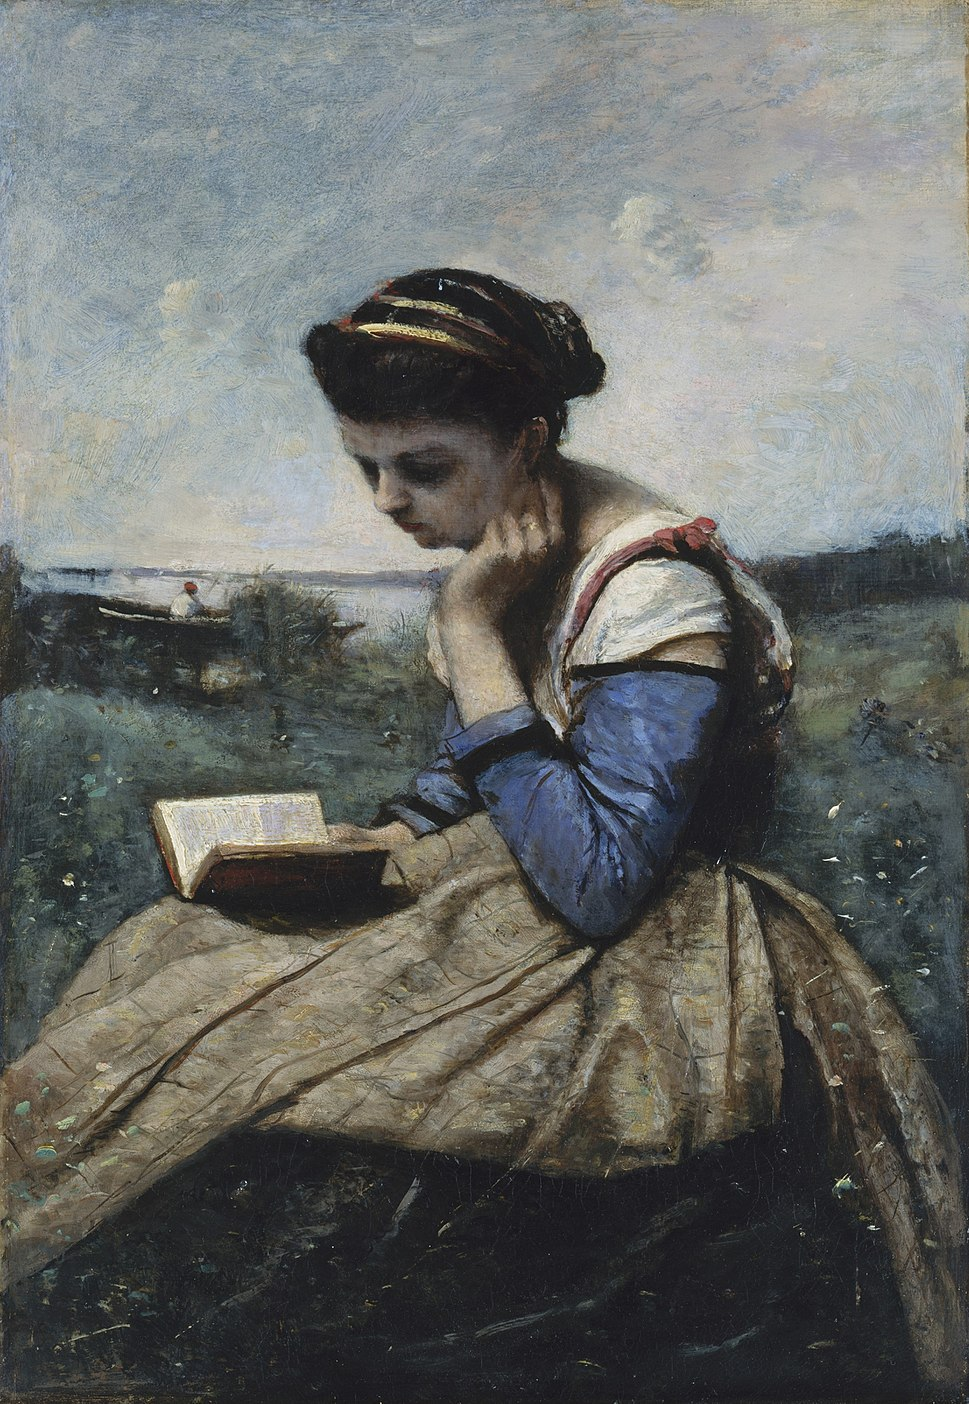 Camille Corot - A Woman Reading - The Metropolitan Museum of Art